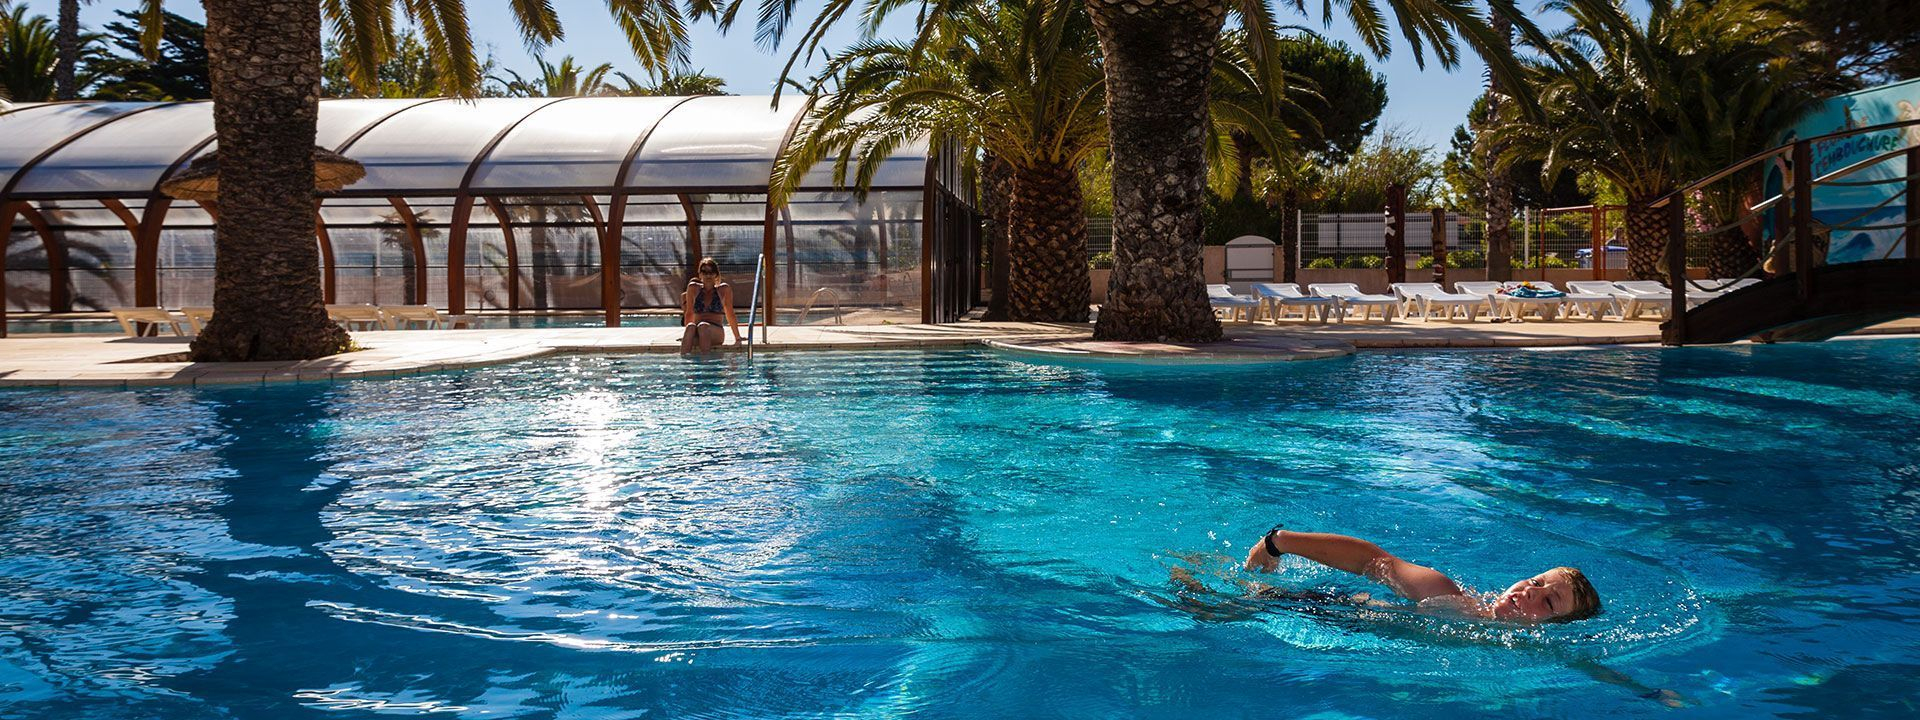 Annuaire Campings - Catalogue Camping Du Club Airotel. concernant Camping Biarritz Avec Piscine